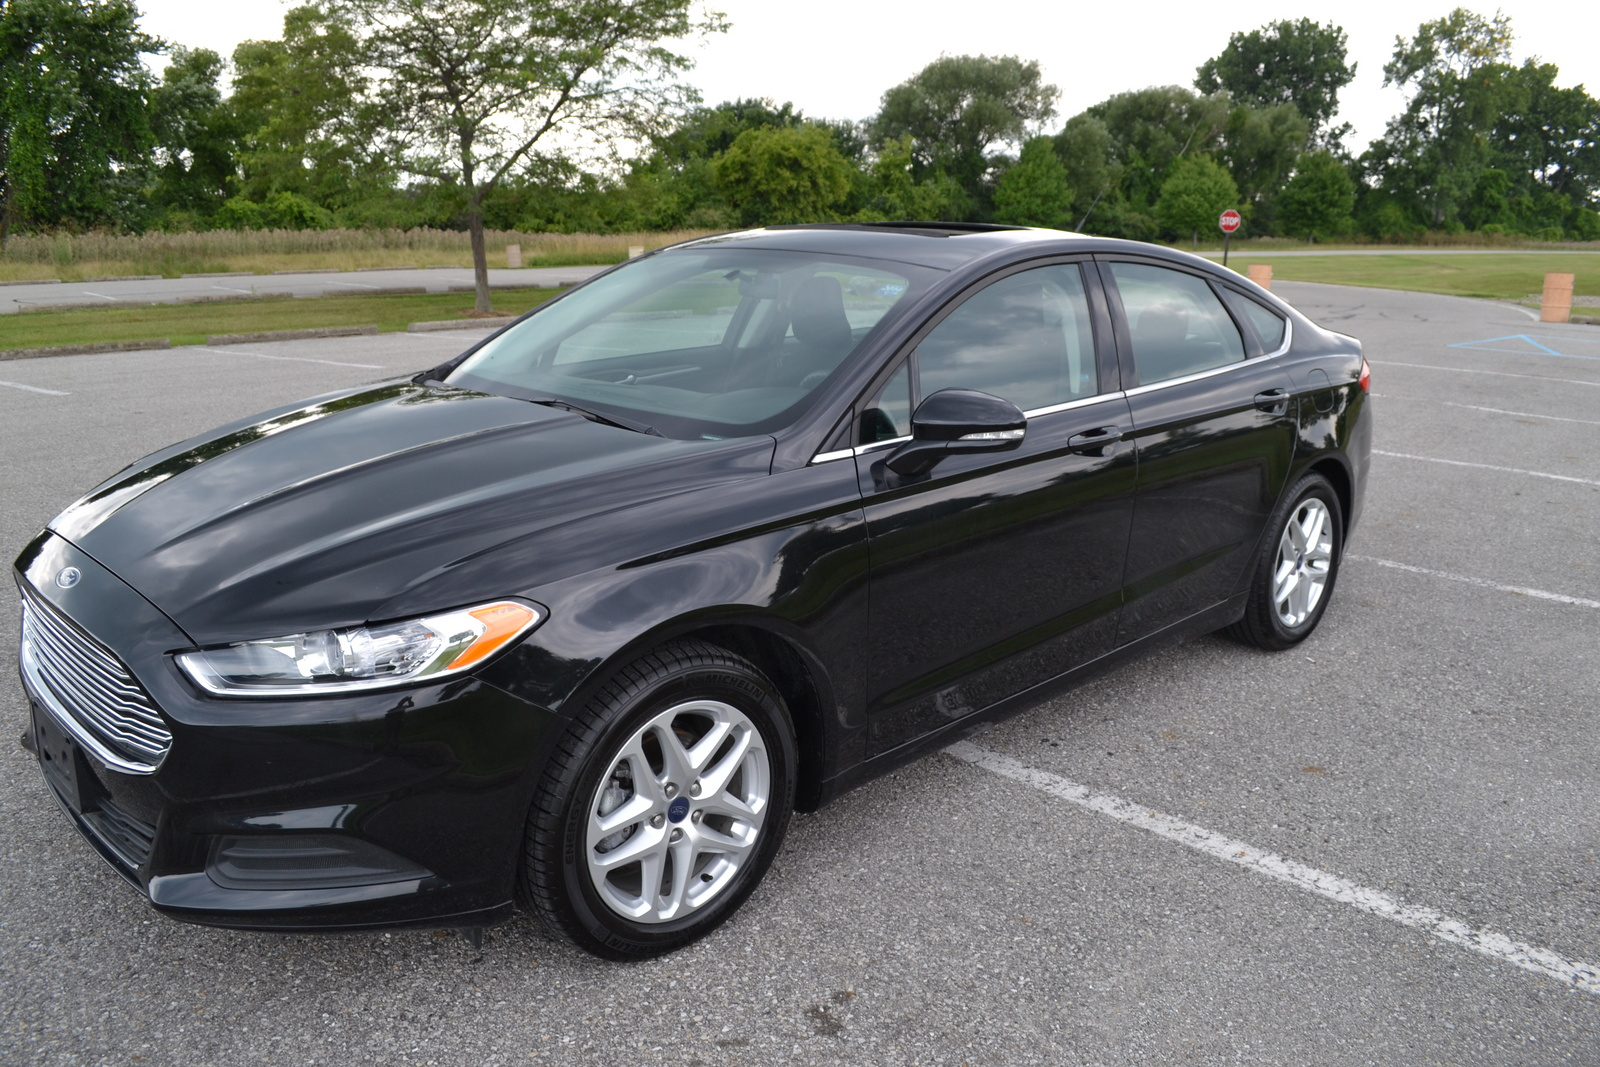 2014 Ford Fusion Pictures Cargurus